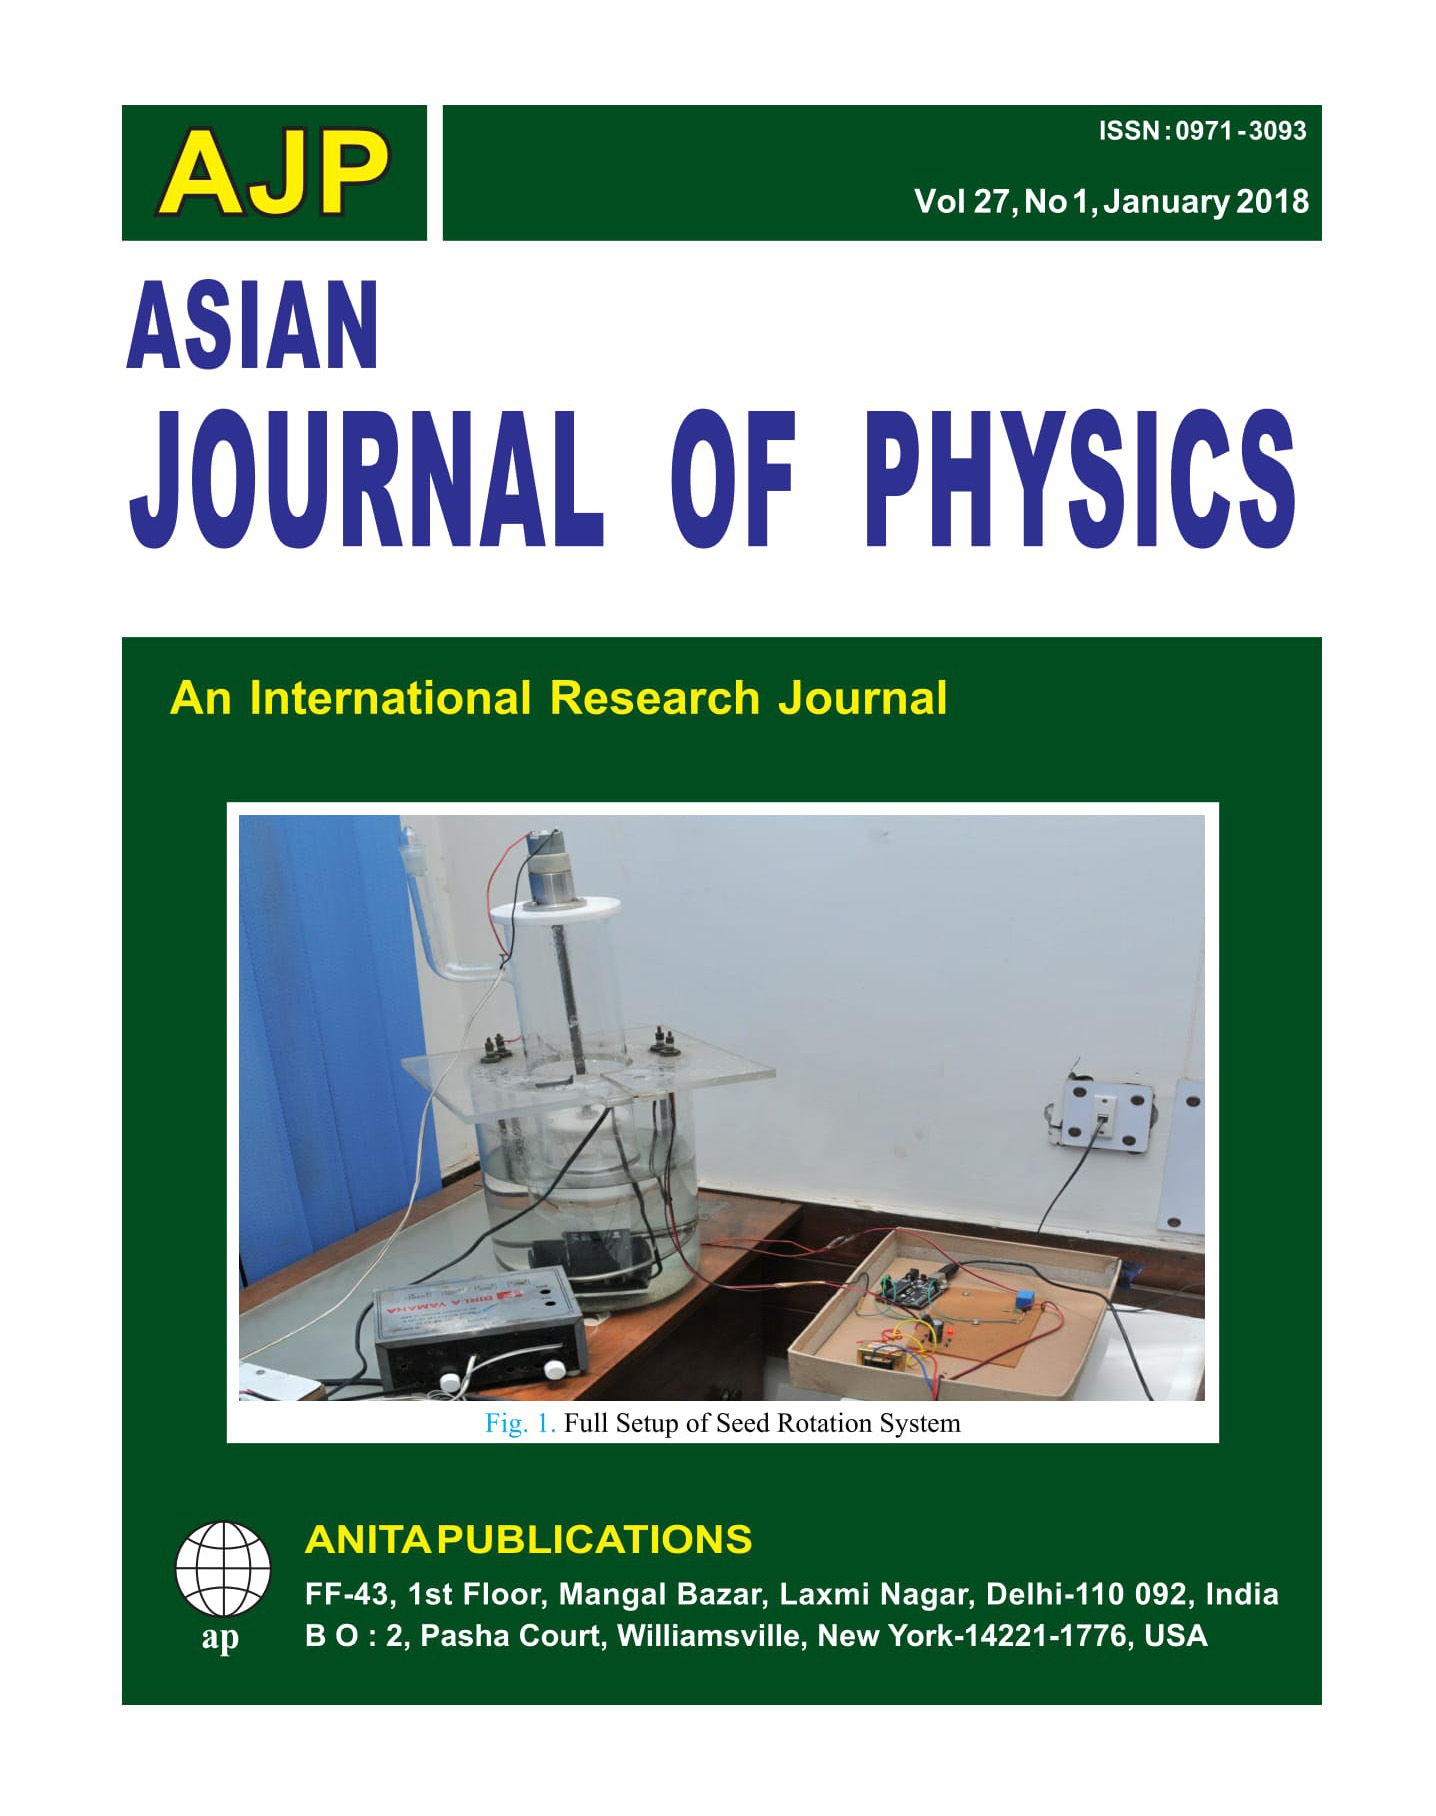 AJP Vol 27 No 1, 2018